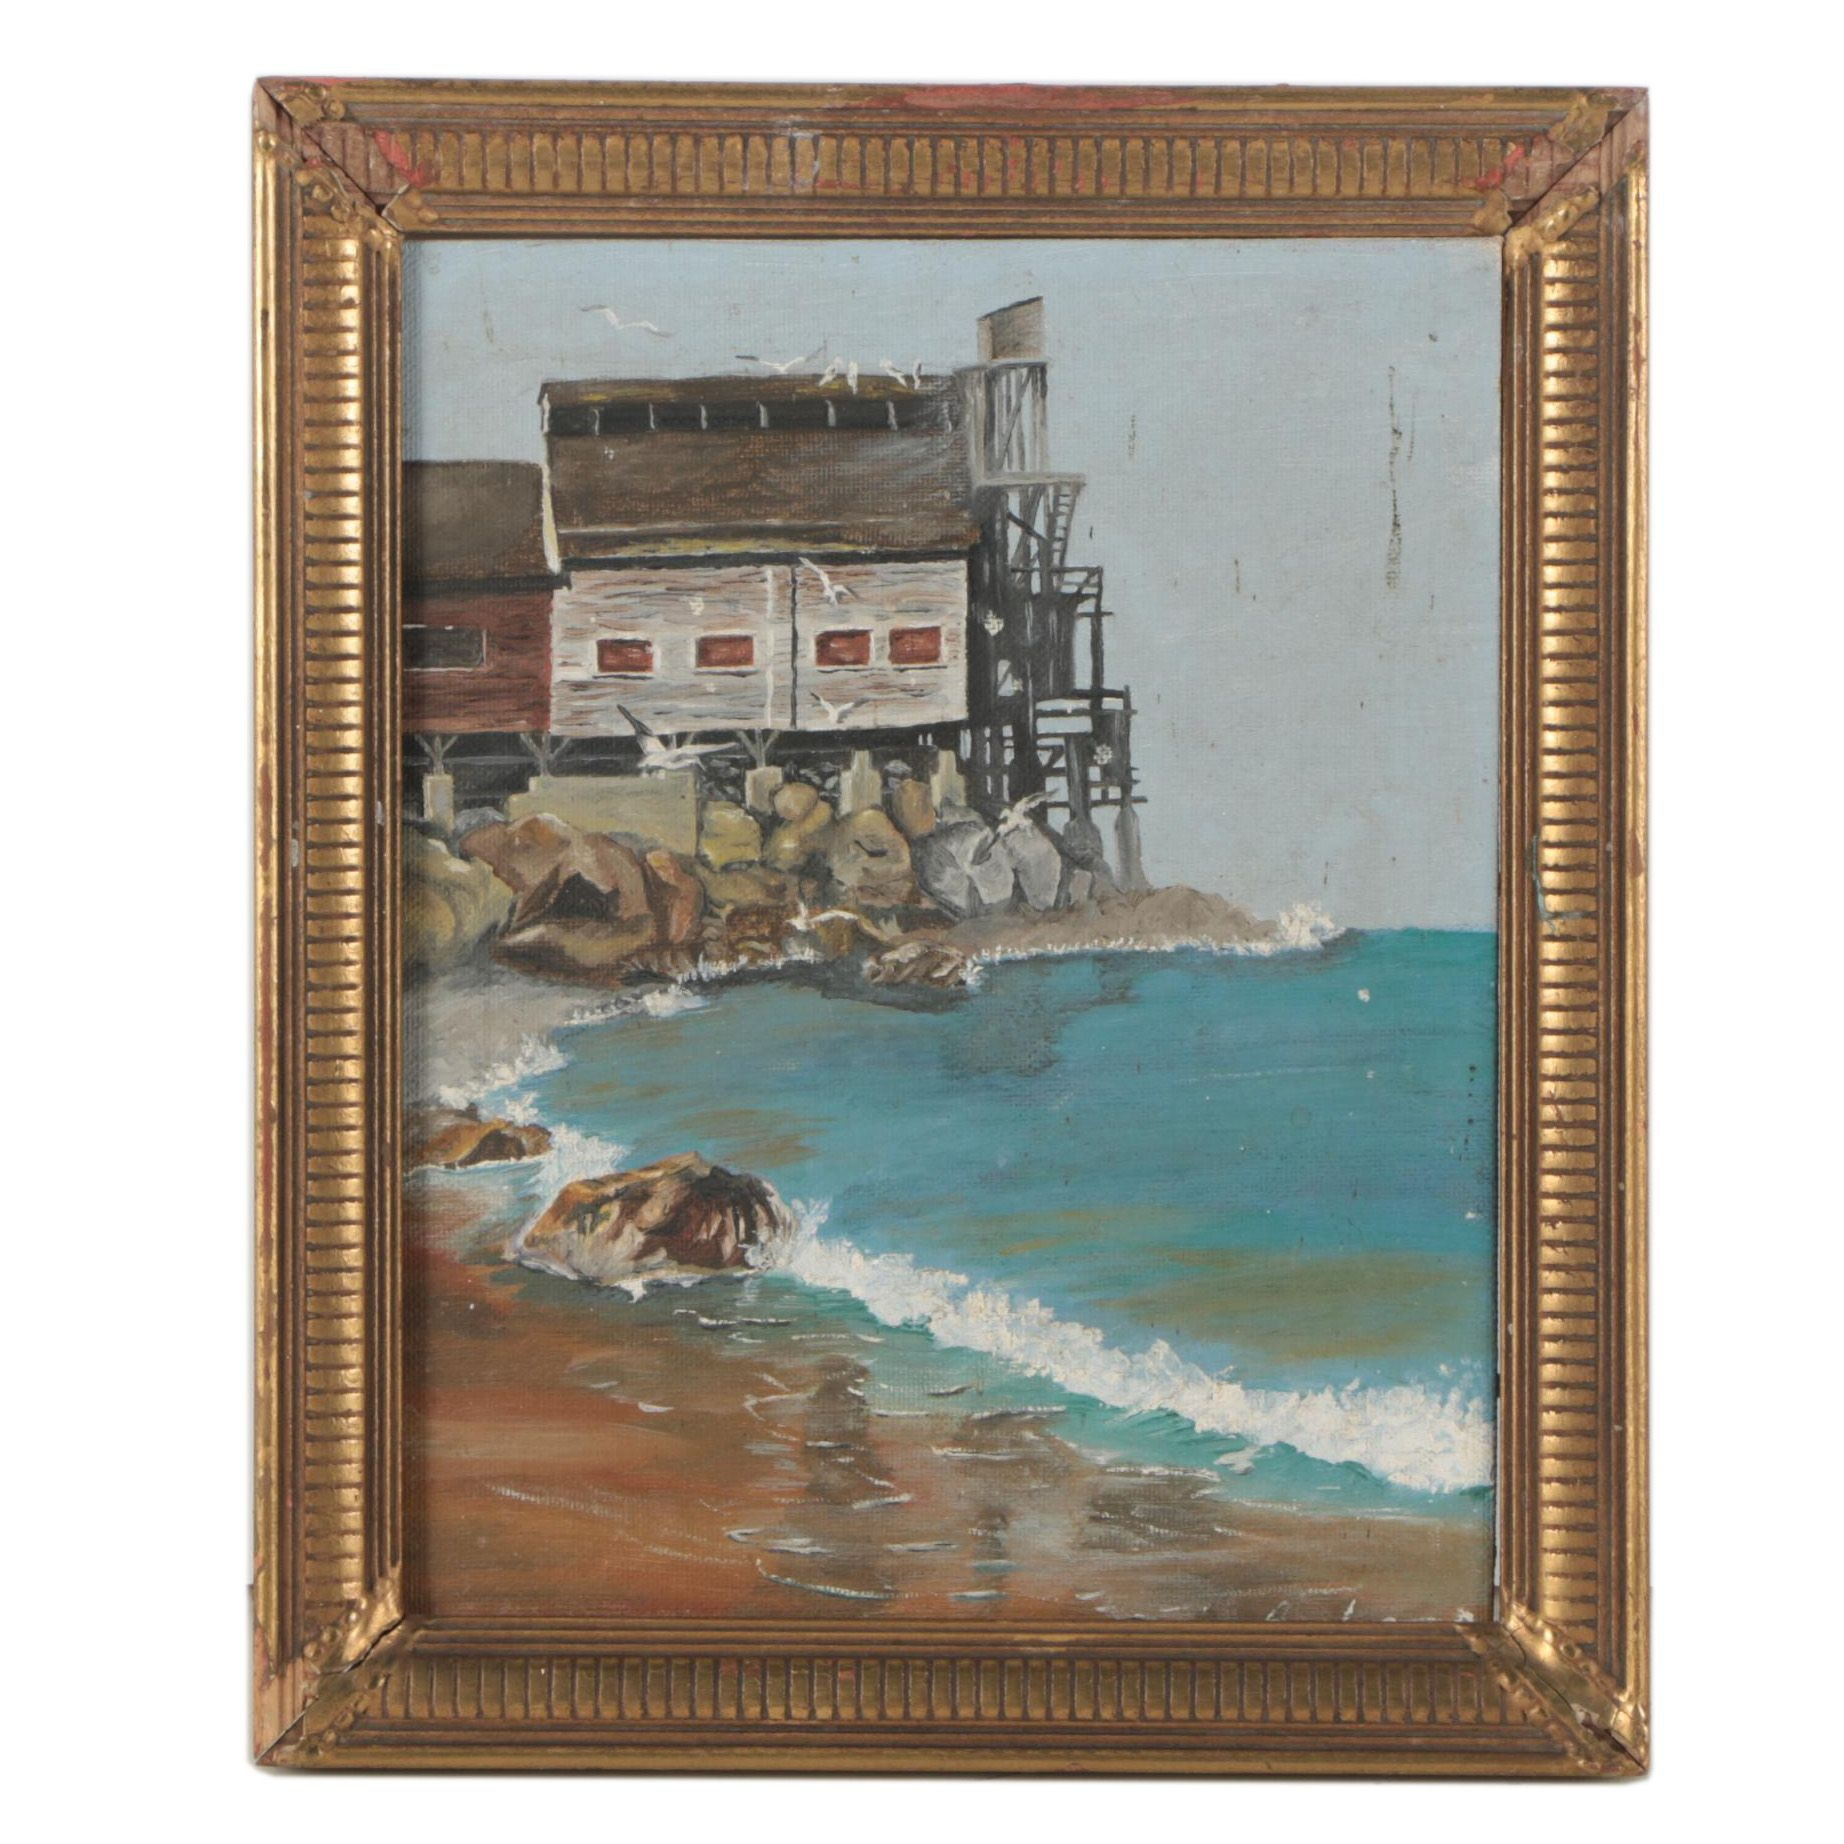 Vintage Oil Painting of Coastal Landscape